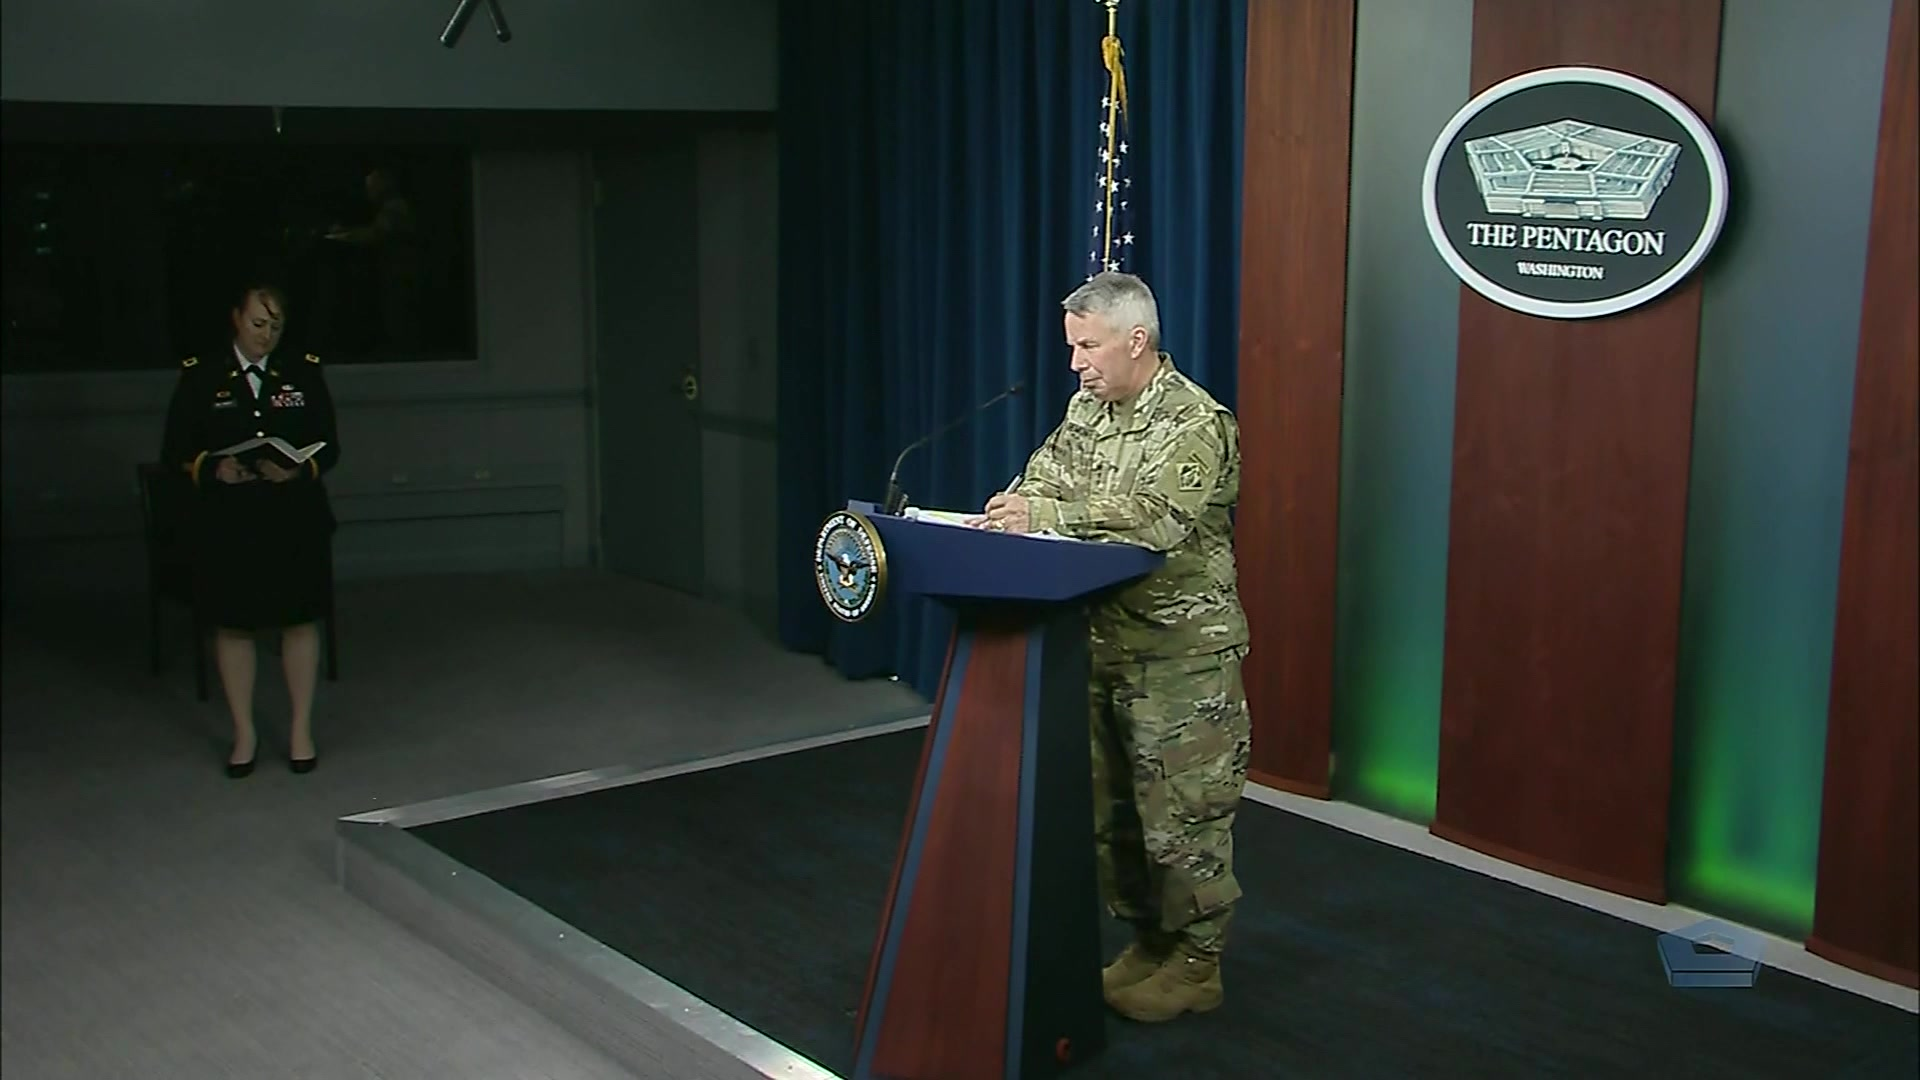 An Army general speaks at a lectern.